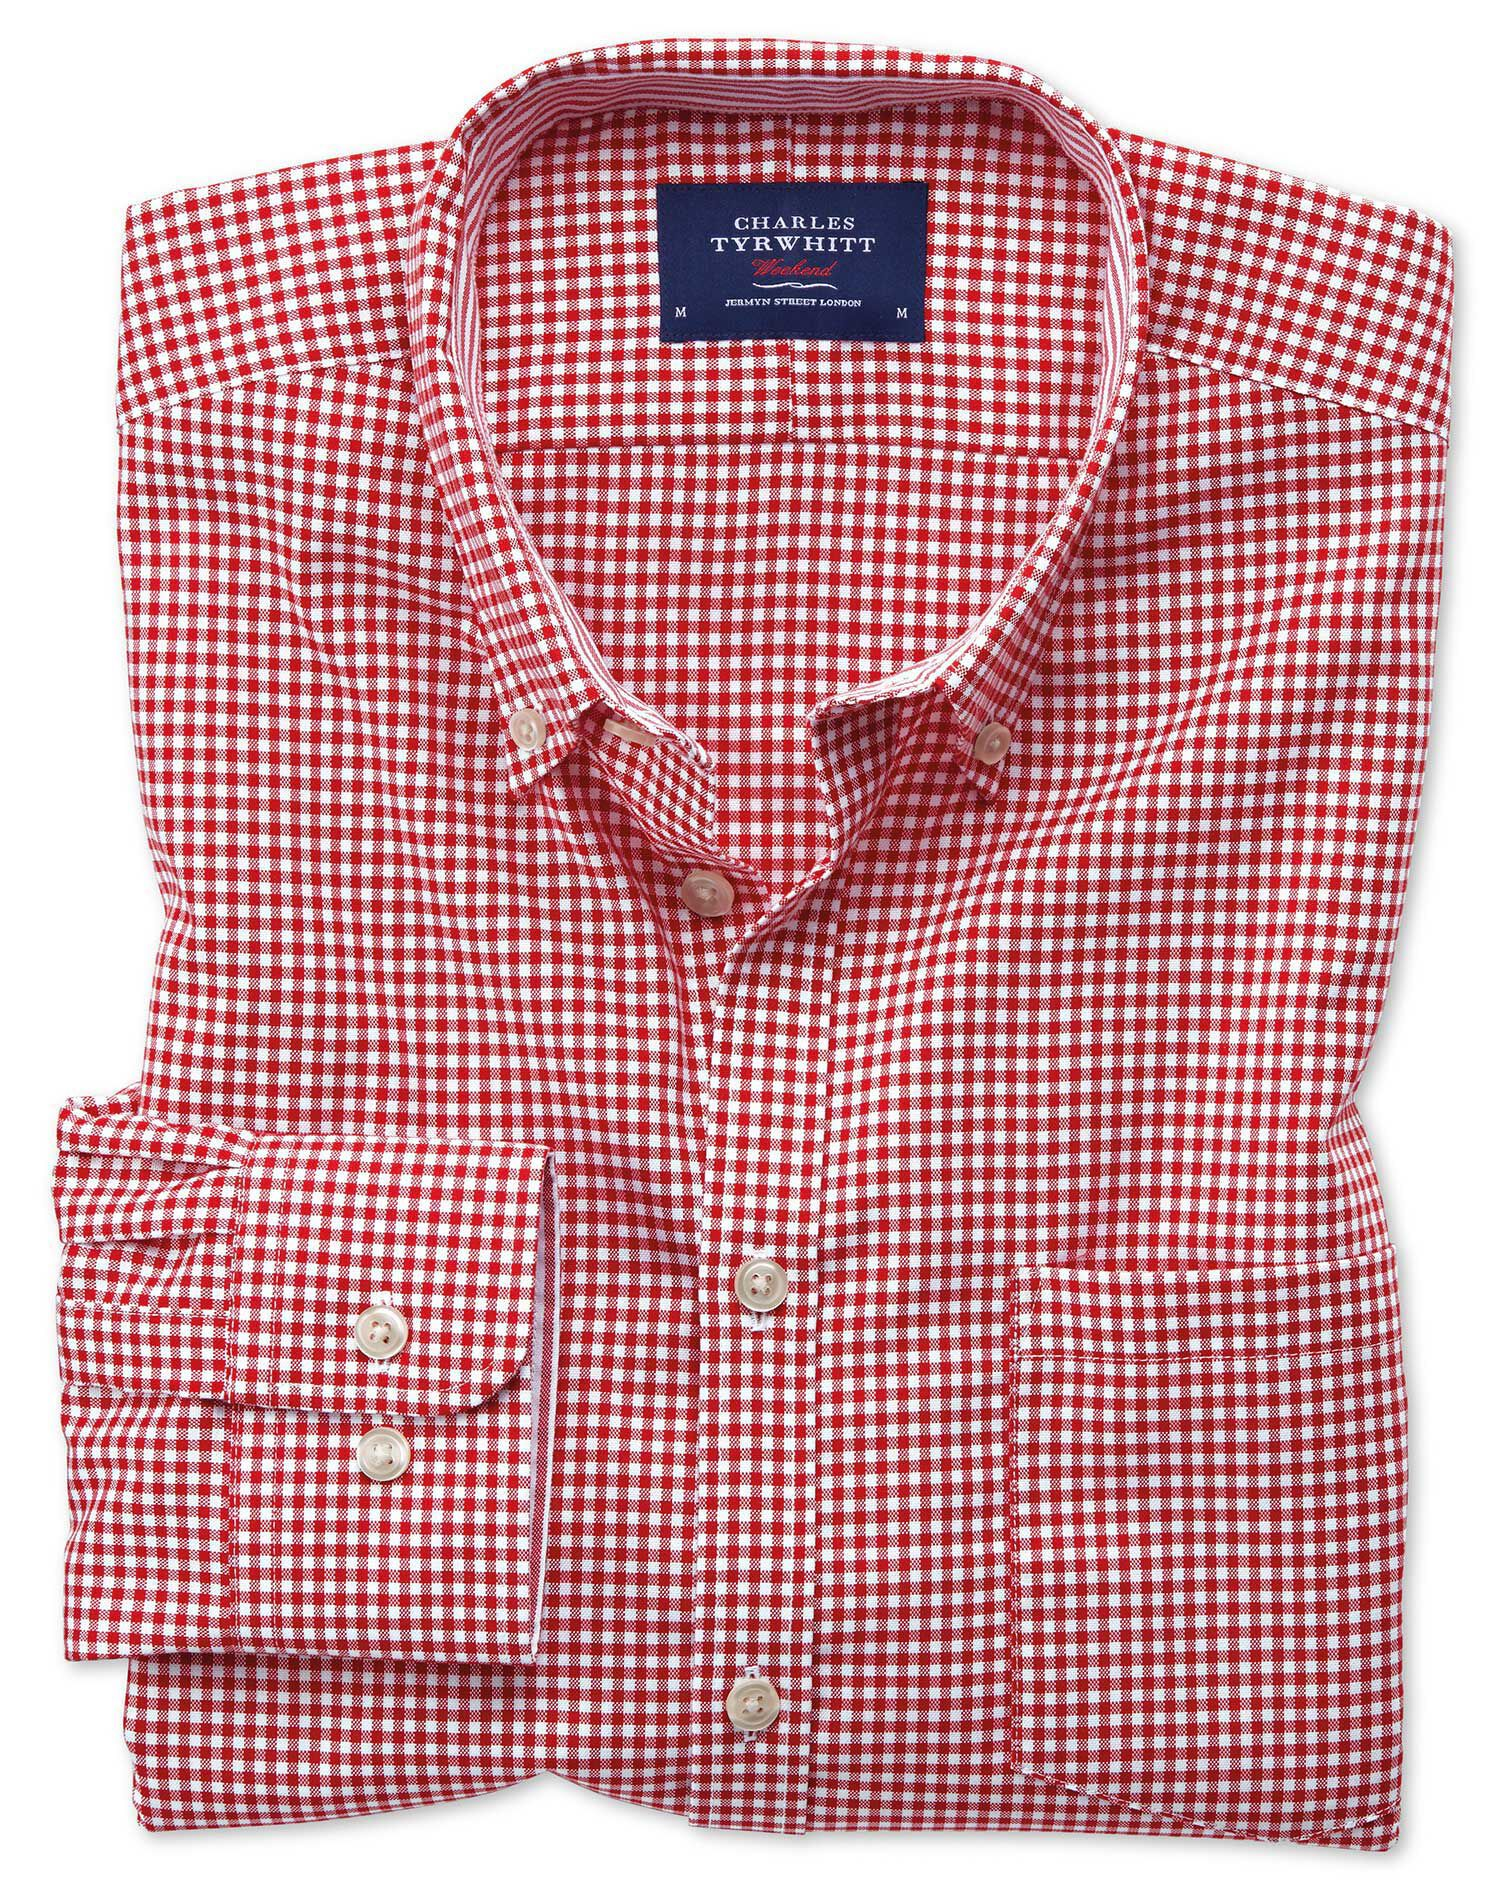 Slim Fit Button-Down Non-Iron Oxford Gingham Red Cotton Shirt Single Cuff Size XXL by Charles Tyrwhi